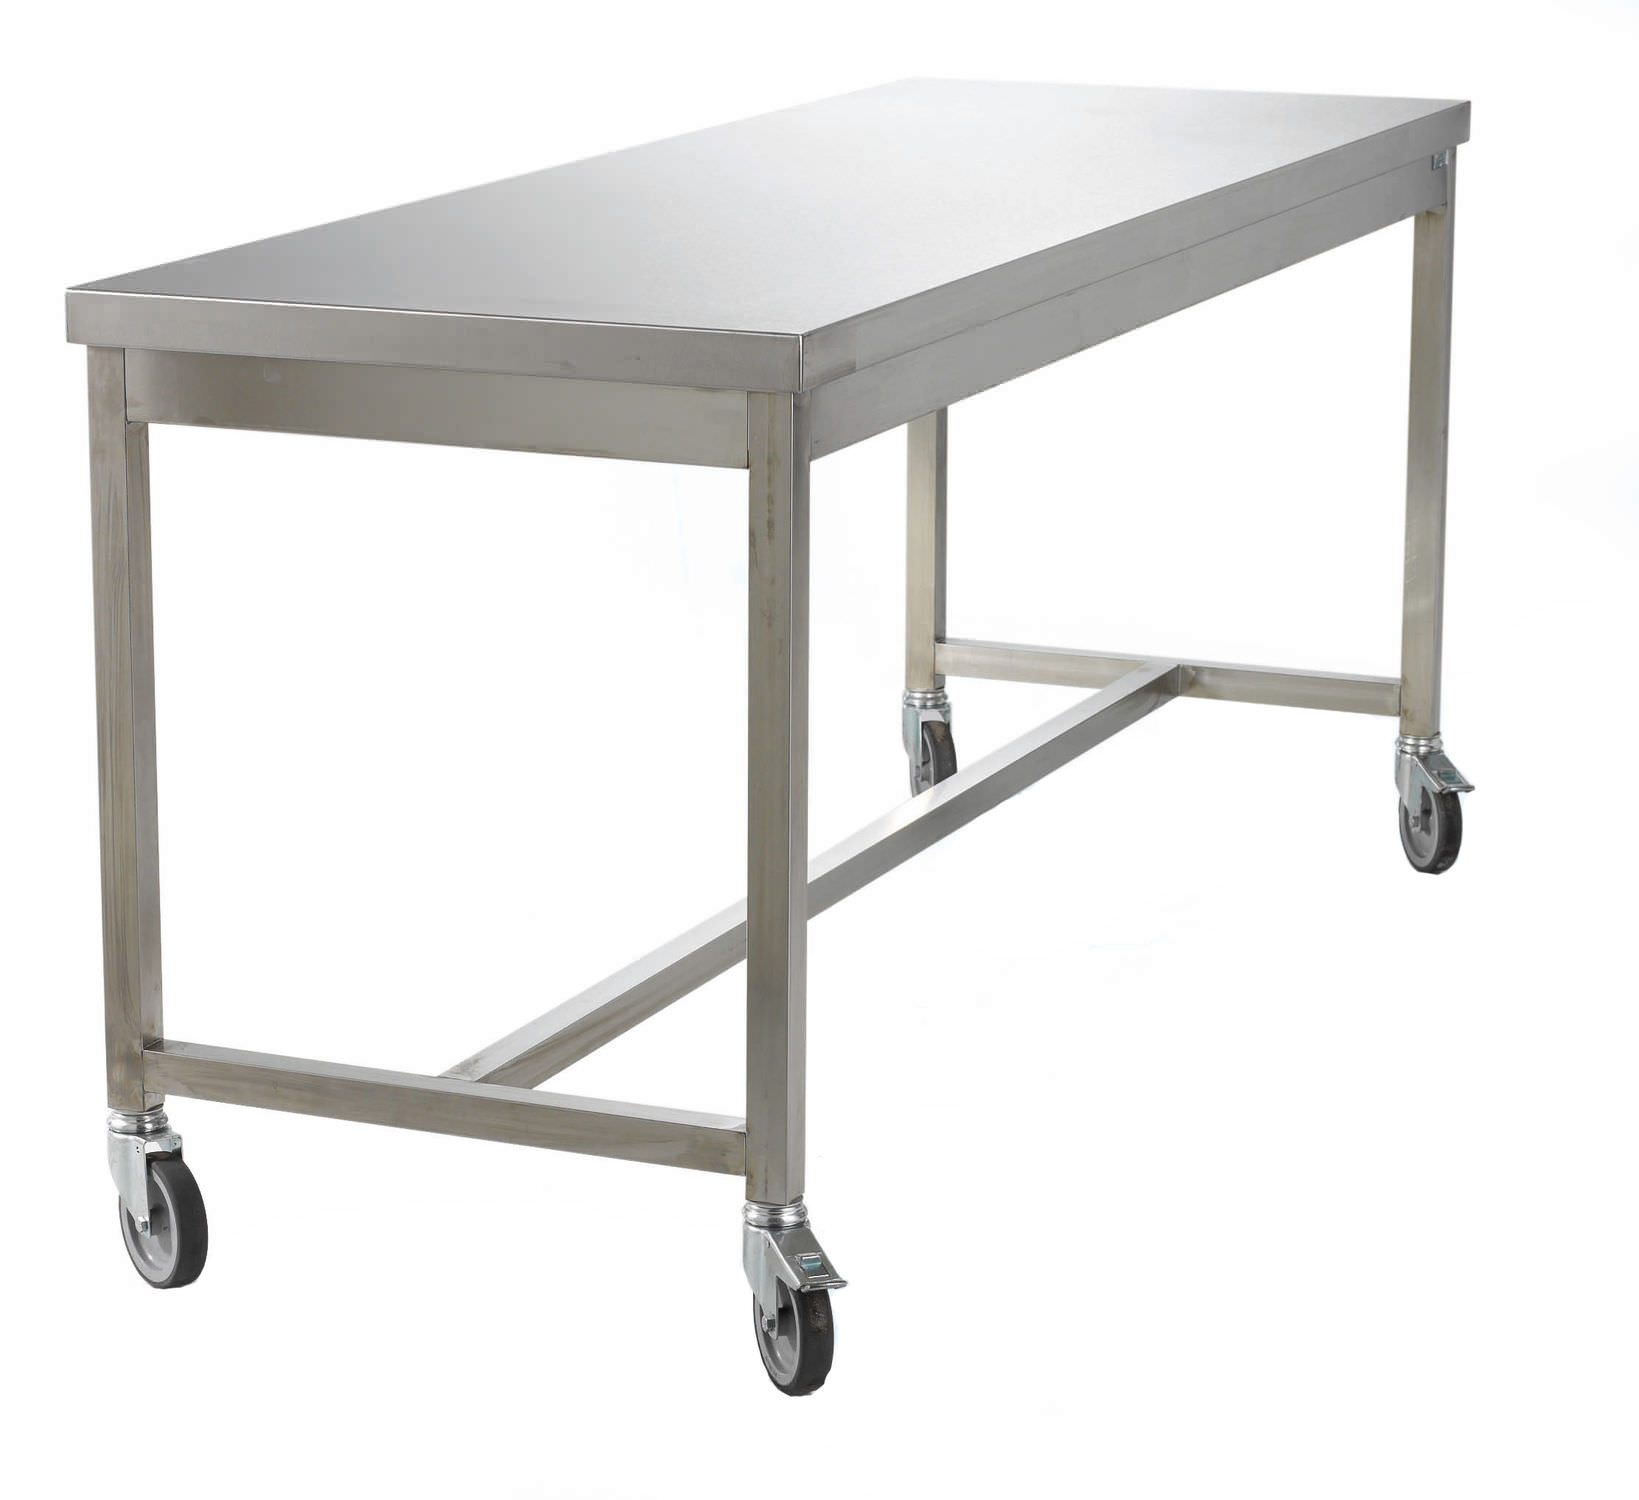 Charmant Great Stainless Steel Work Table On Casters 78393 147803 983×900 Pixels |  Storage And